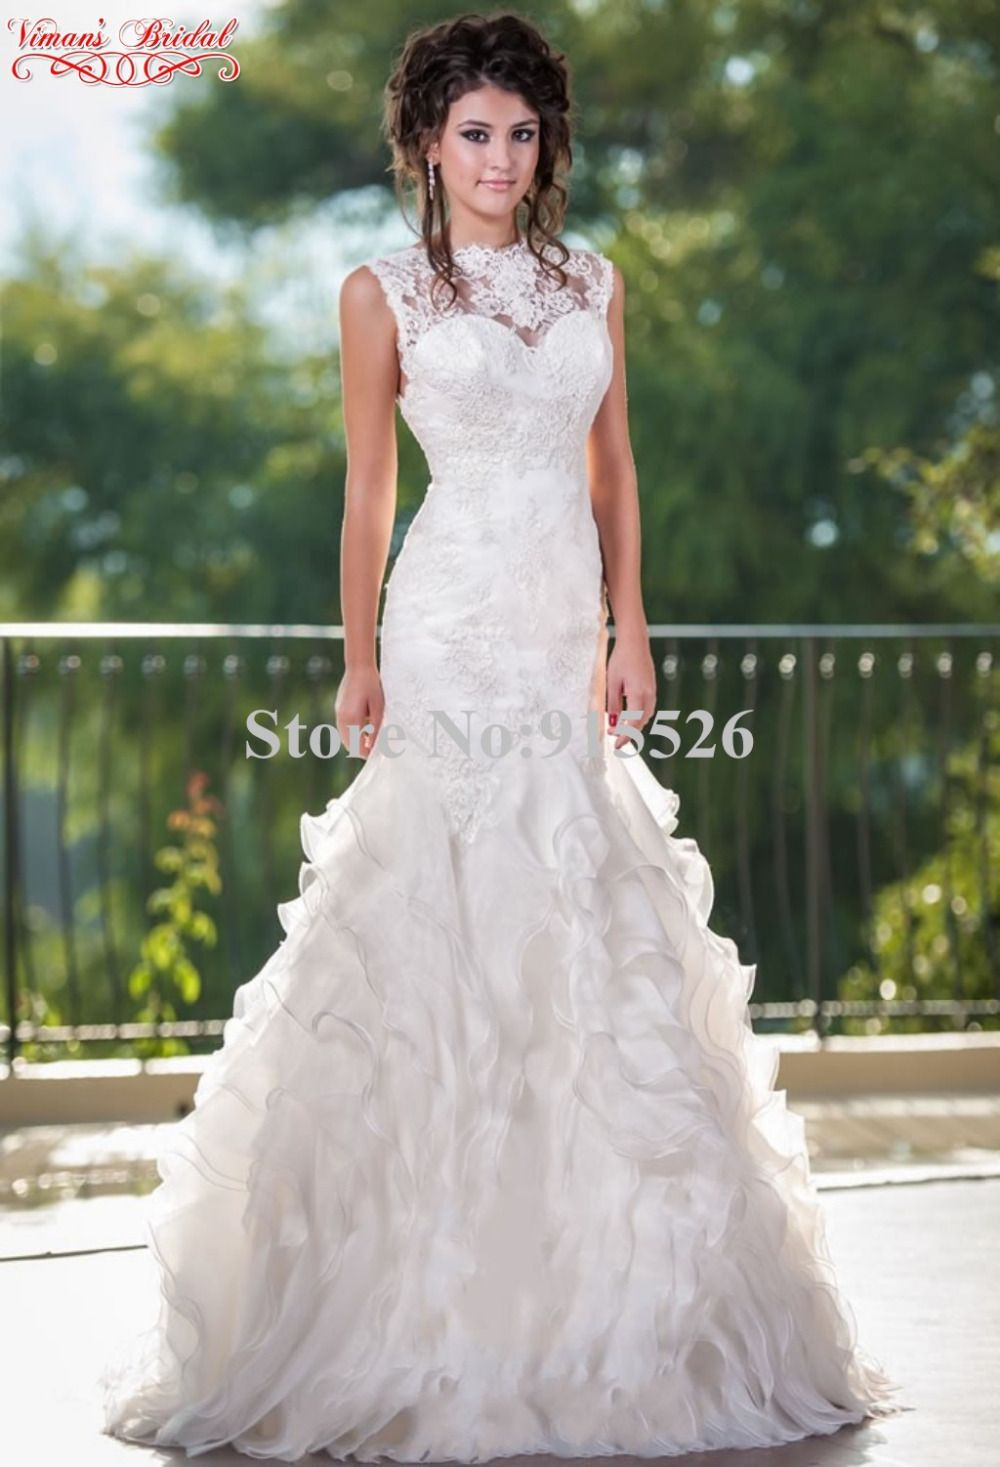 Mermaid ruffle wedding dress  Click to Buy ucuc  Vimanus Bridal Mermaid Wedding Dress Appliques